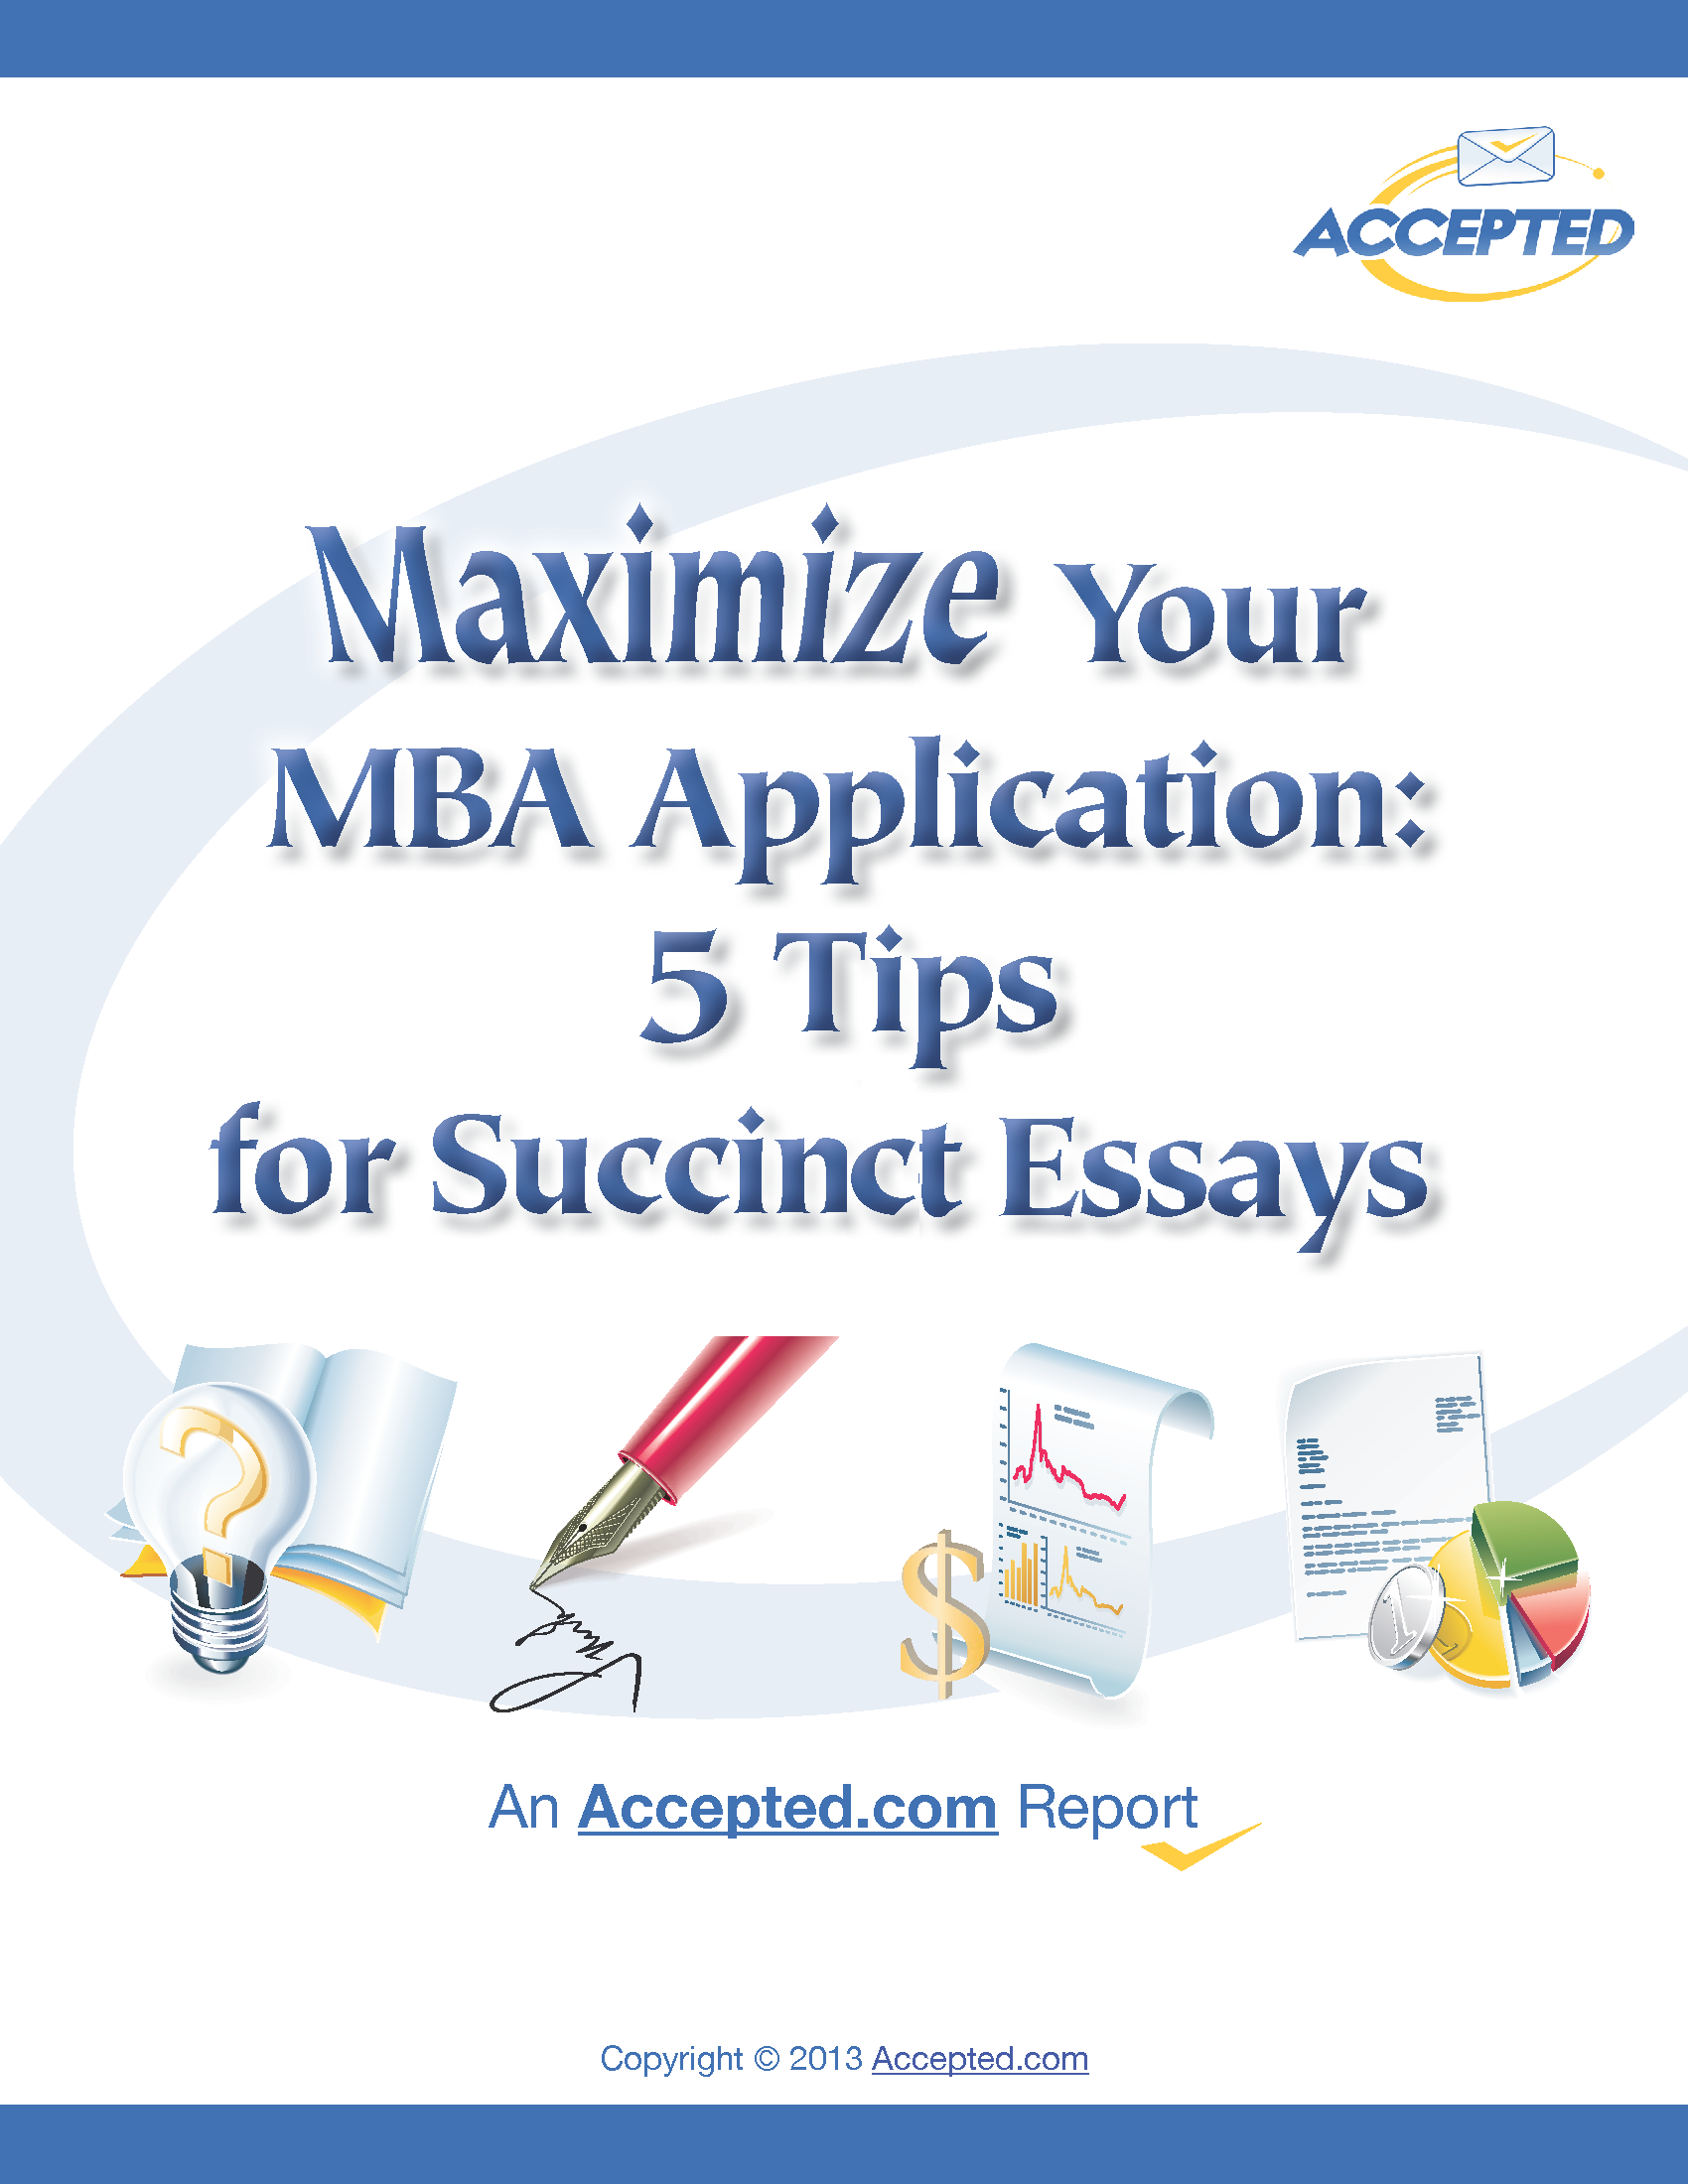 Maximize Your MBA Application